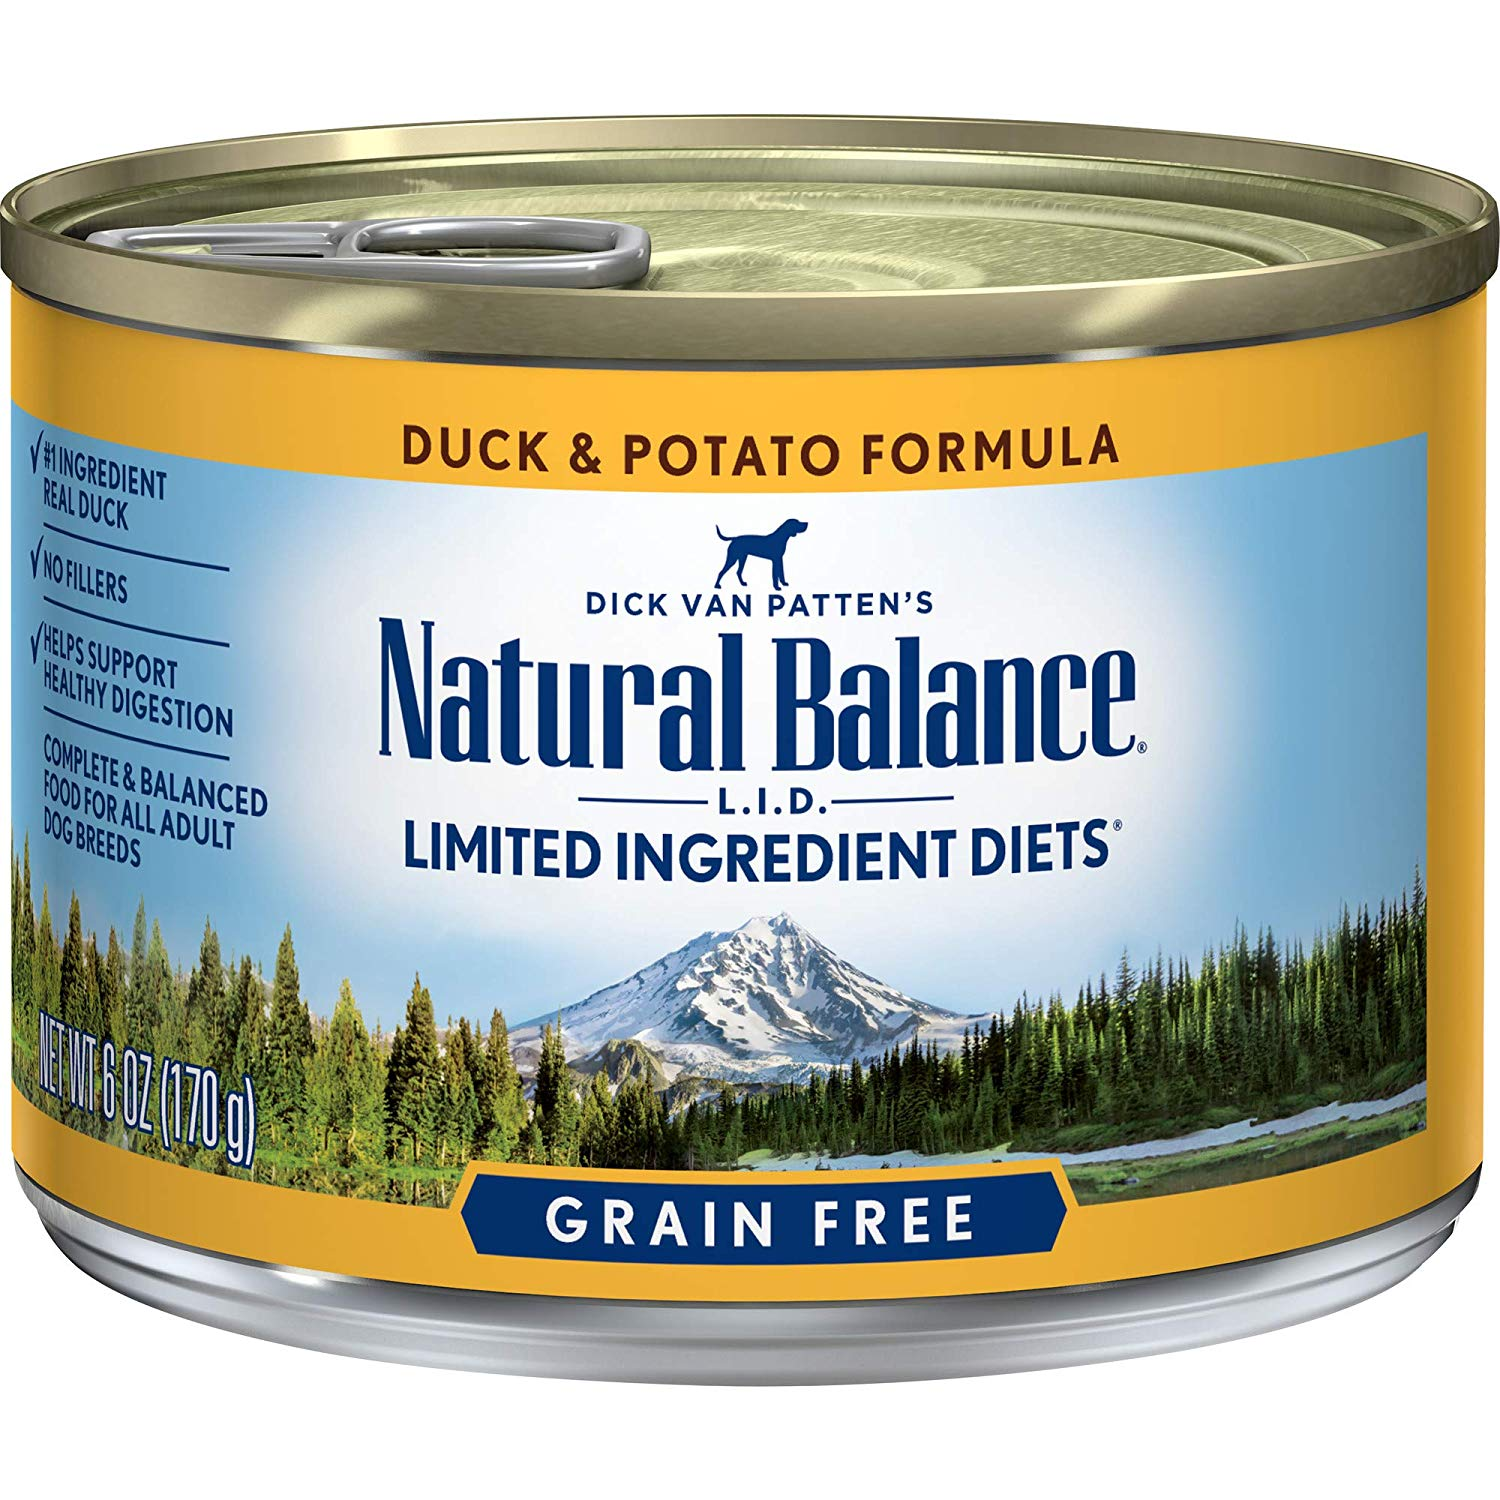 Natural Balance L.I.D. Limited Ingredient Diets Duck & Potato Formula Grain-Free Canned Dog Food, 6-oz